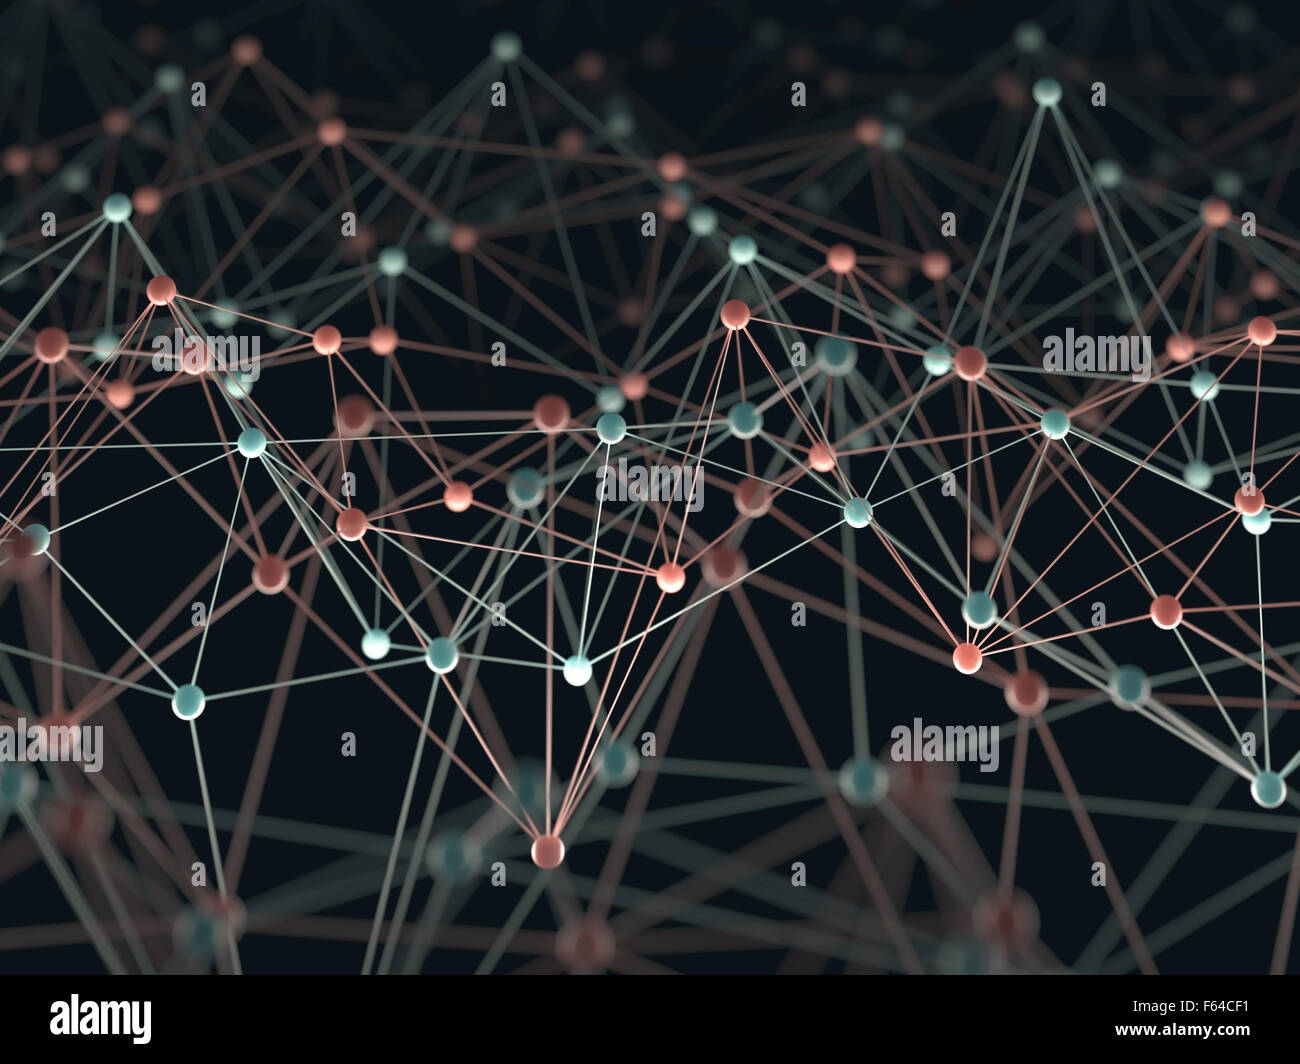 Abstract background with points and interlinked connections in a network concept. - Stock Image